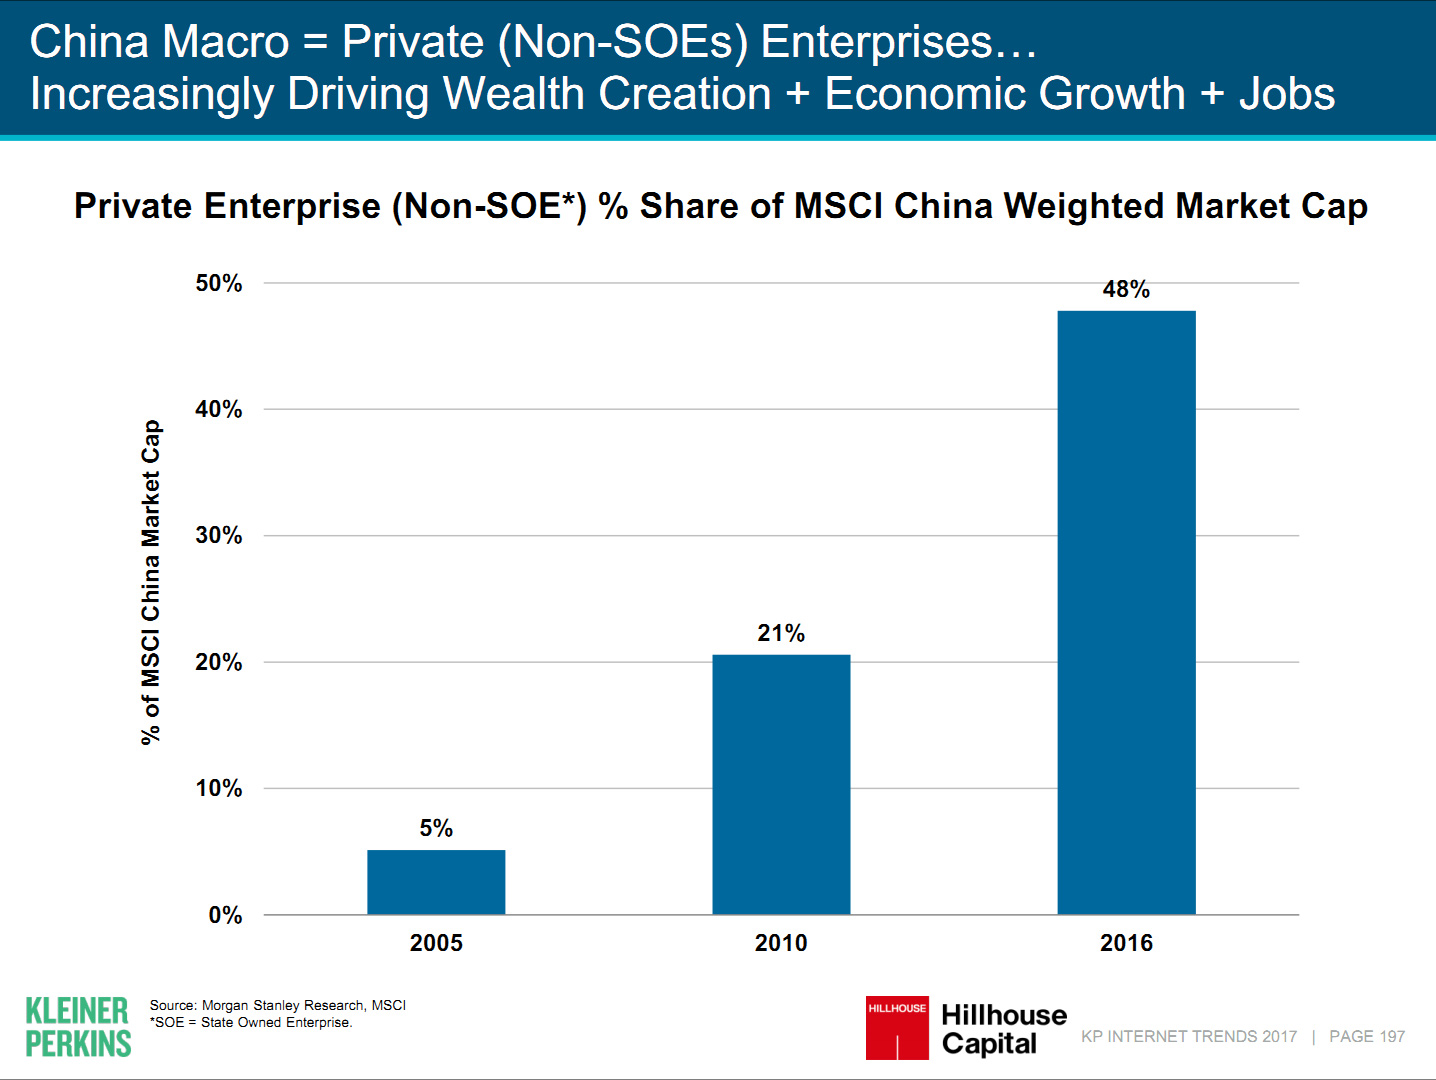 Chinas Weighted Market cap